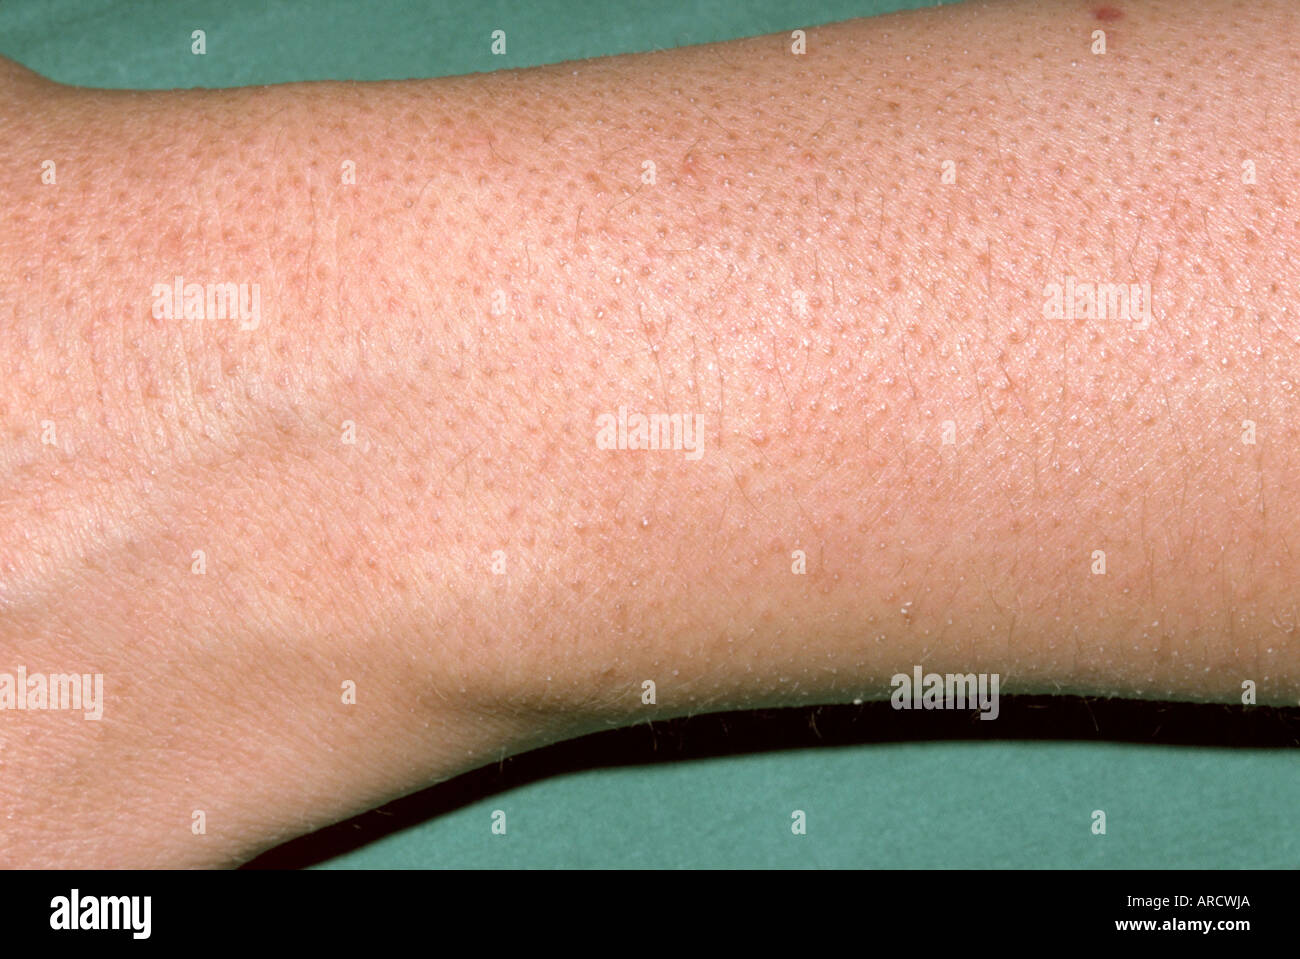 The arm of a patient with keratosis pilaris Stock Photo: 9151209 - Alamy